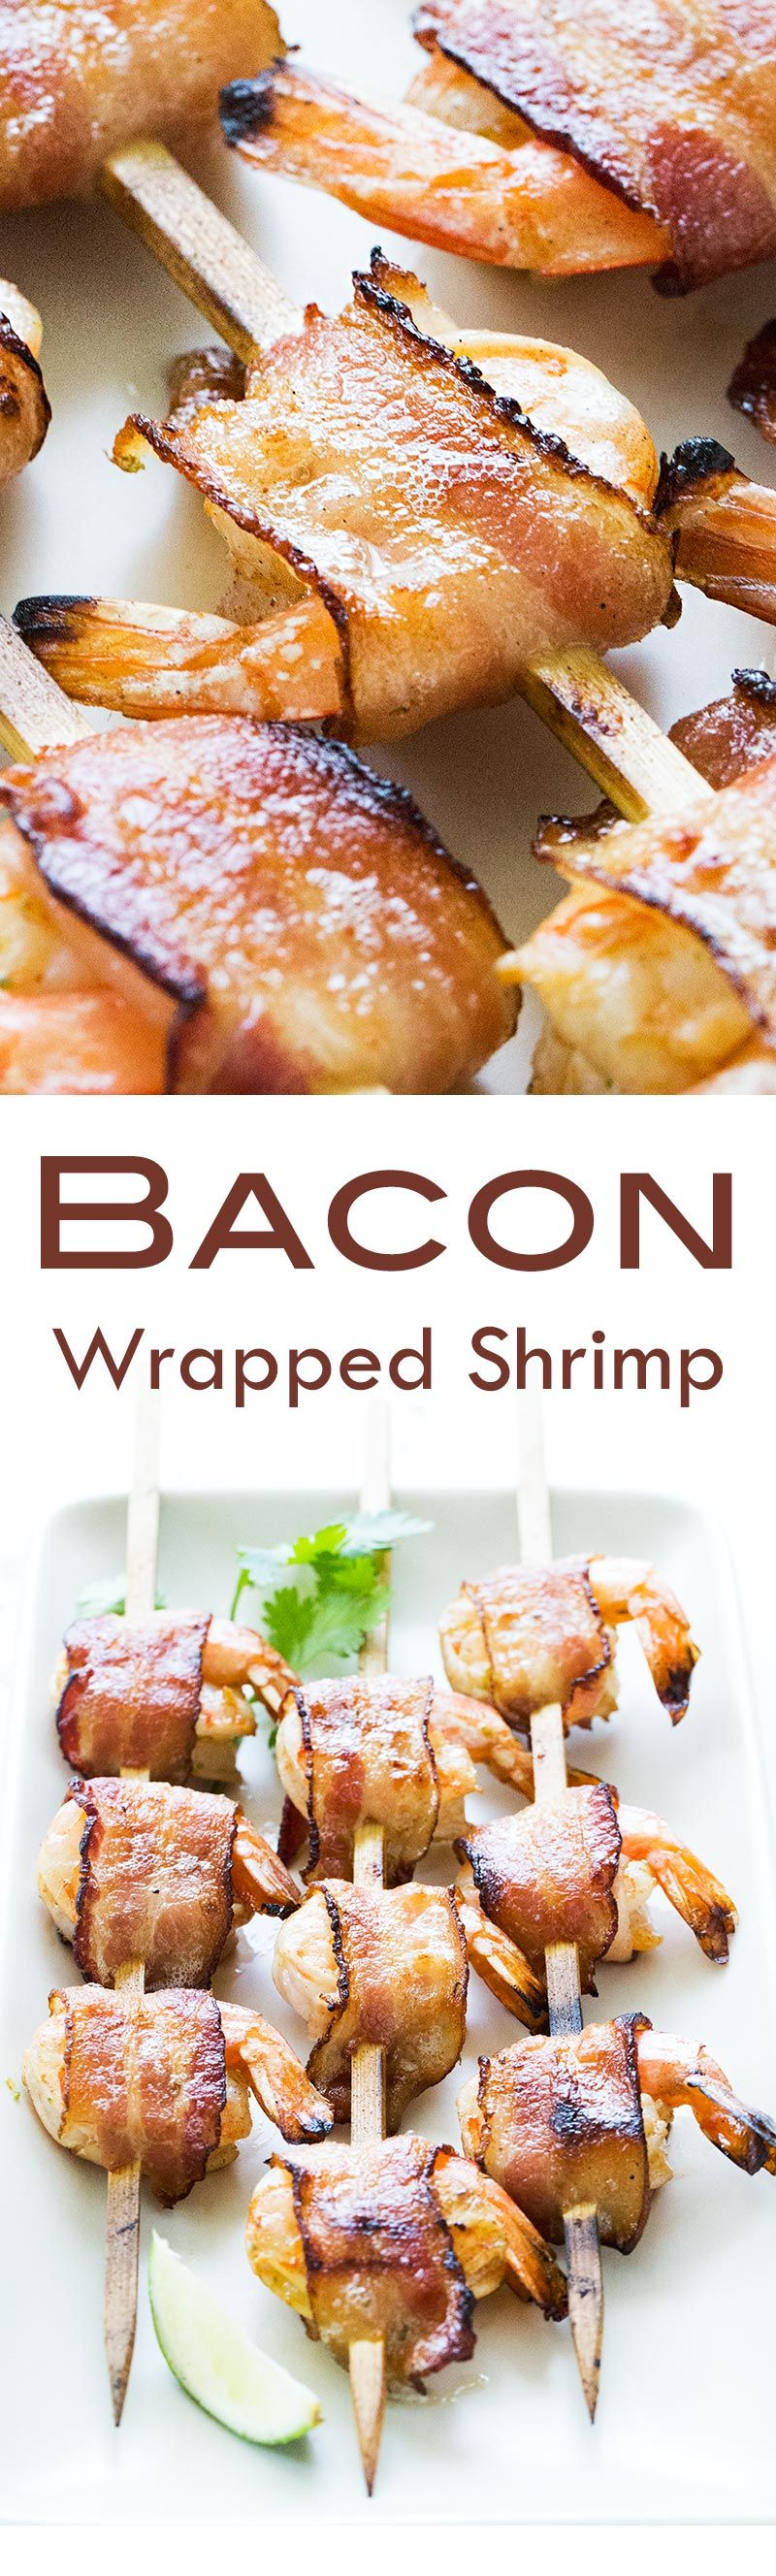 Bacon-wrapped shrimp! Either oven baked or grilled, and seasoned with chili and lime. On SimplyRecipes.com